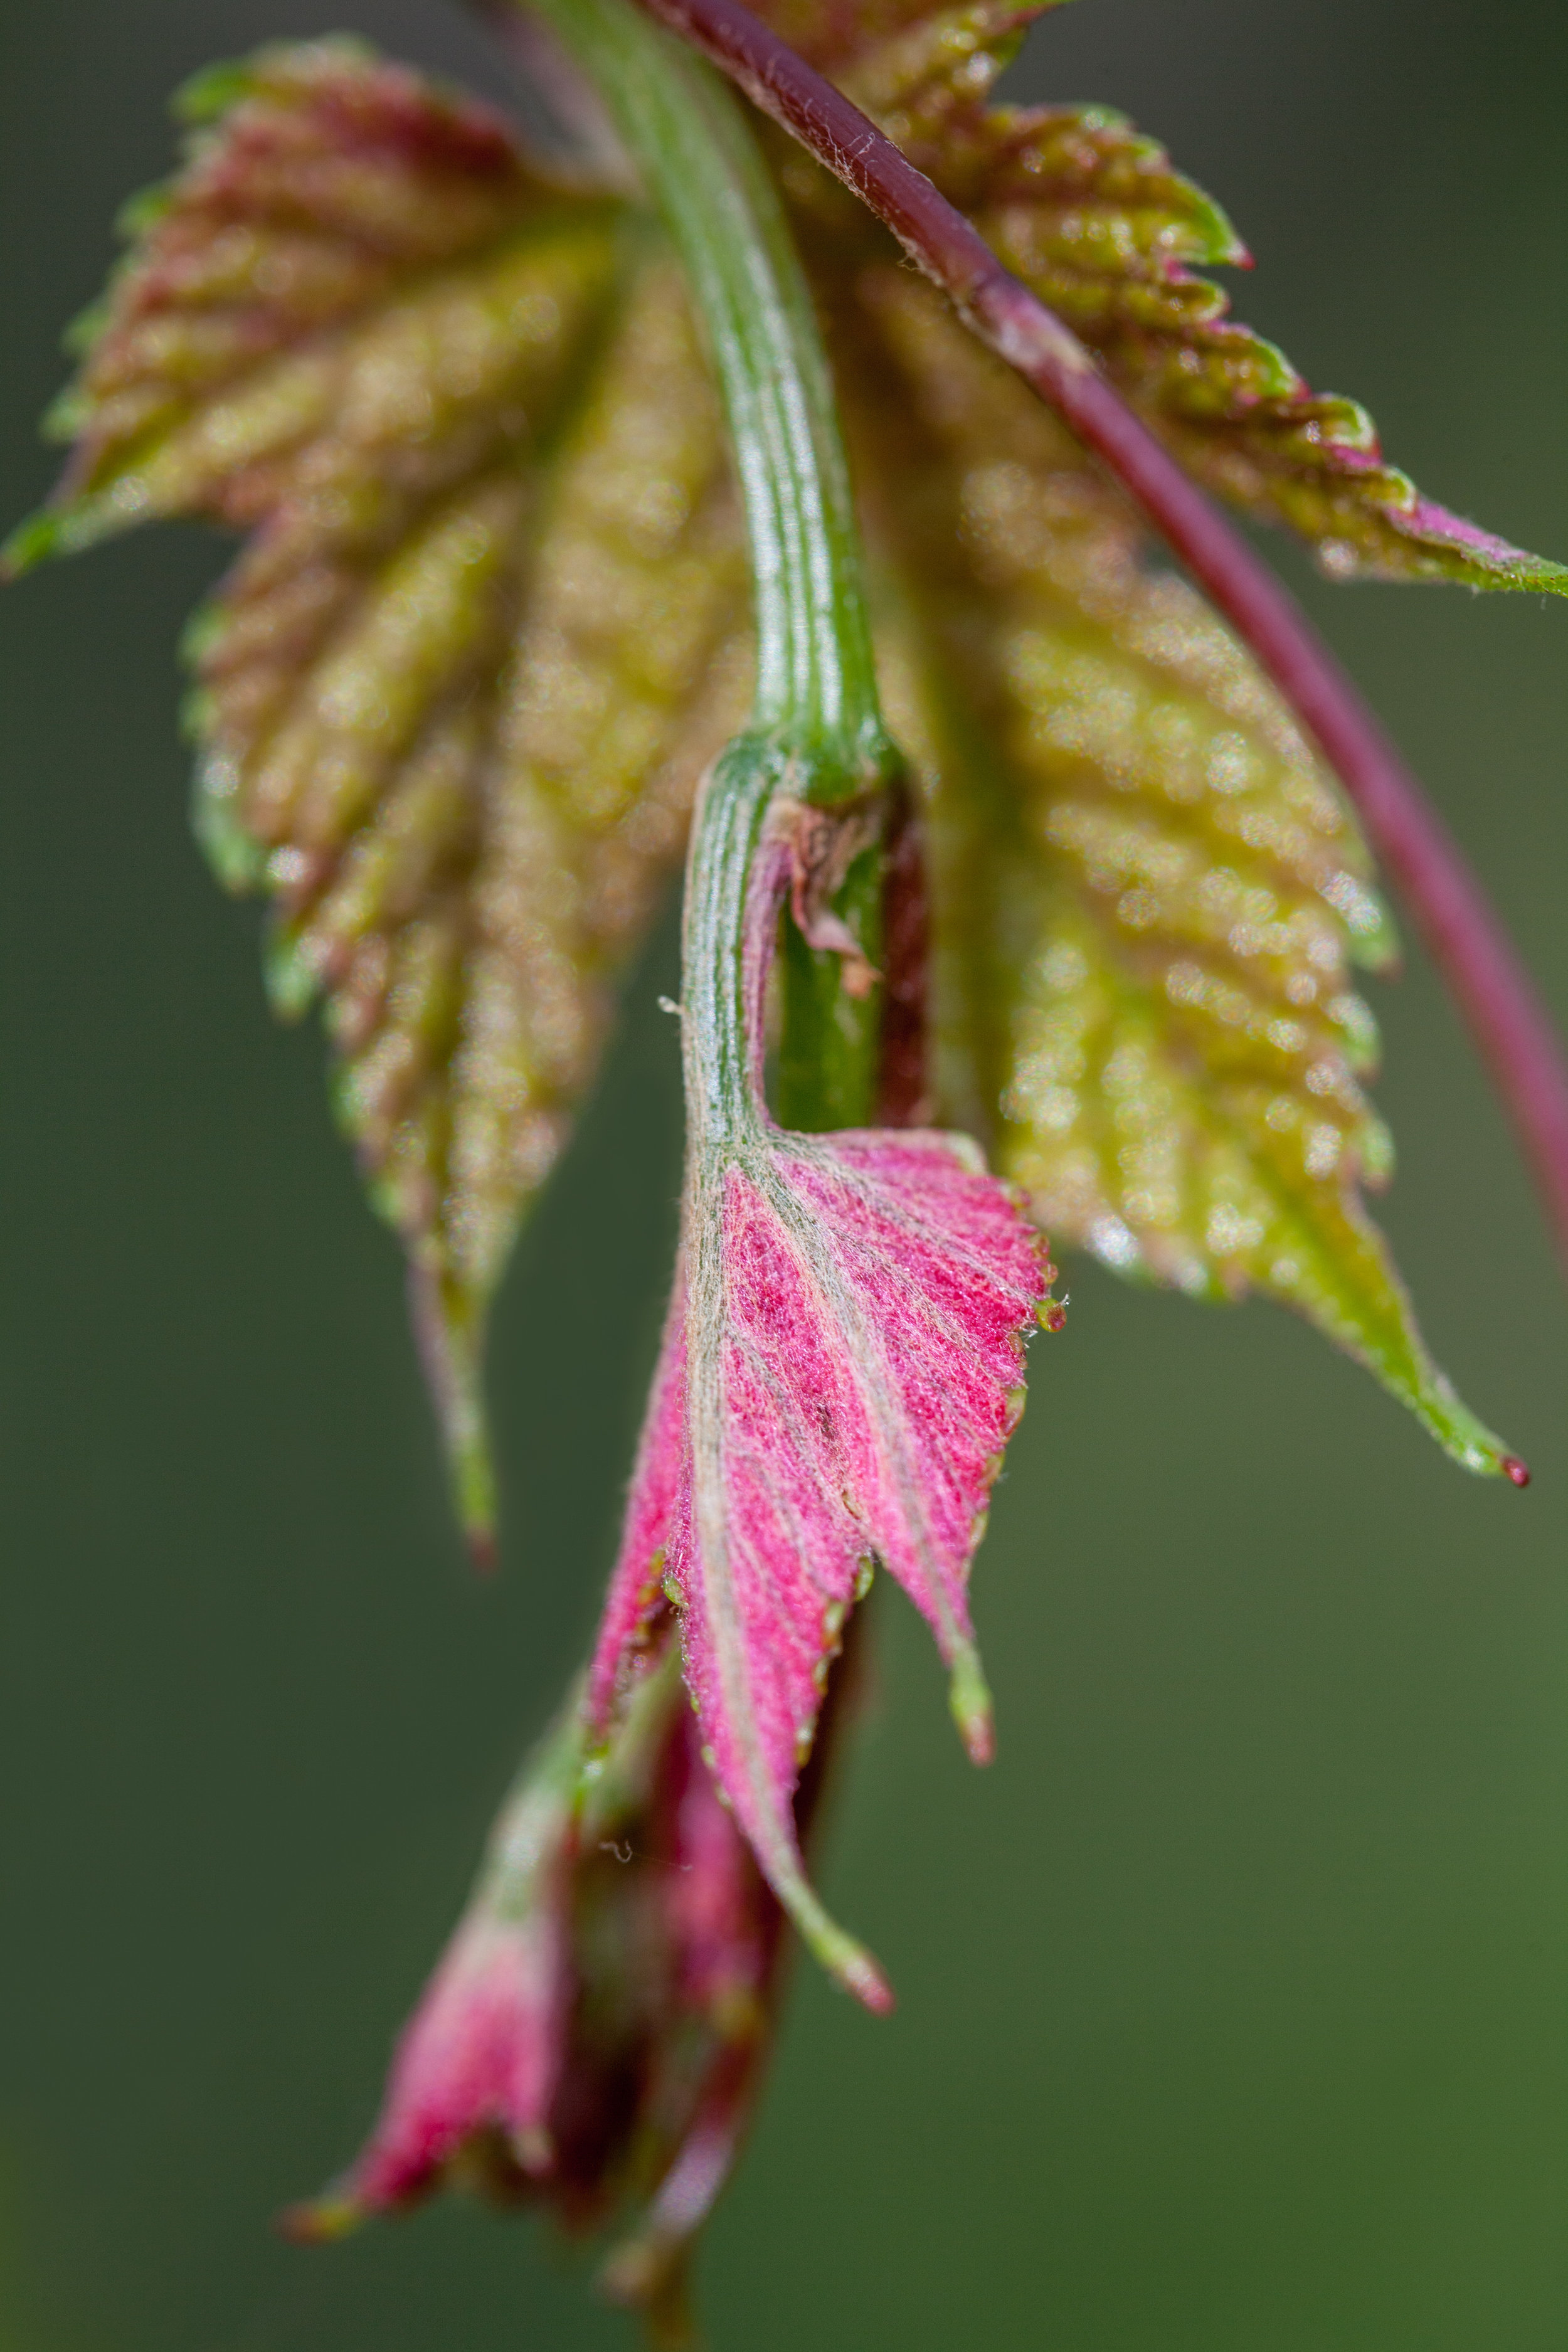 Name for an Emerging Wild Grape Leaf